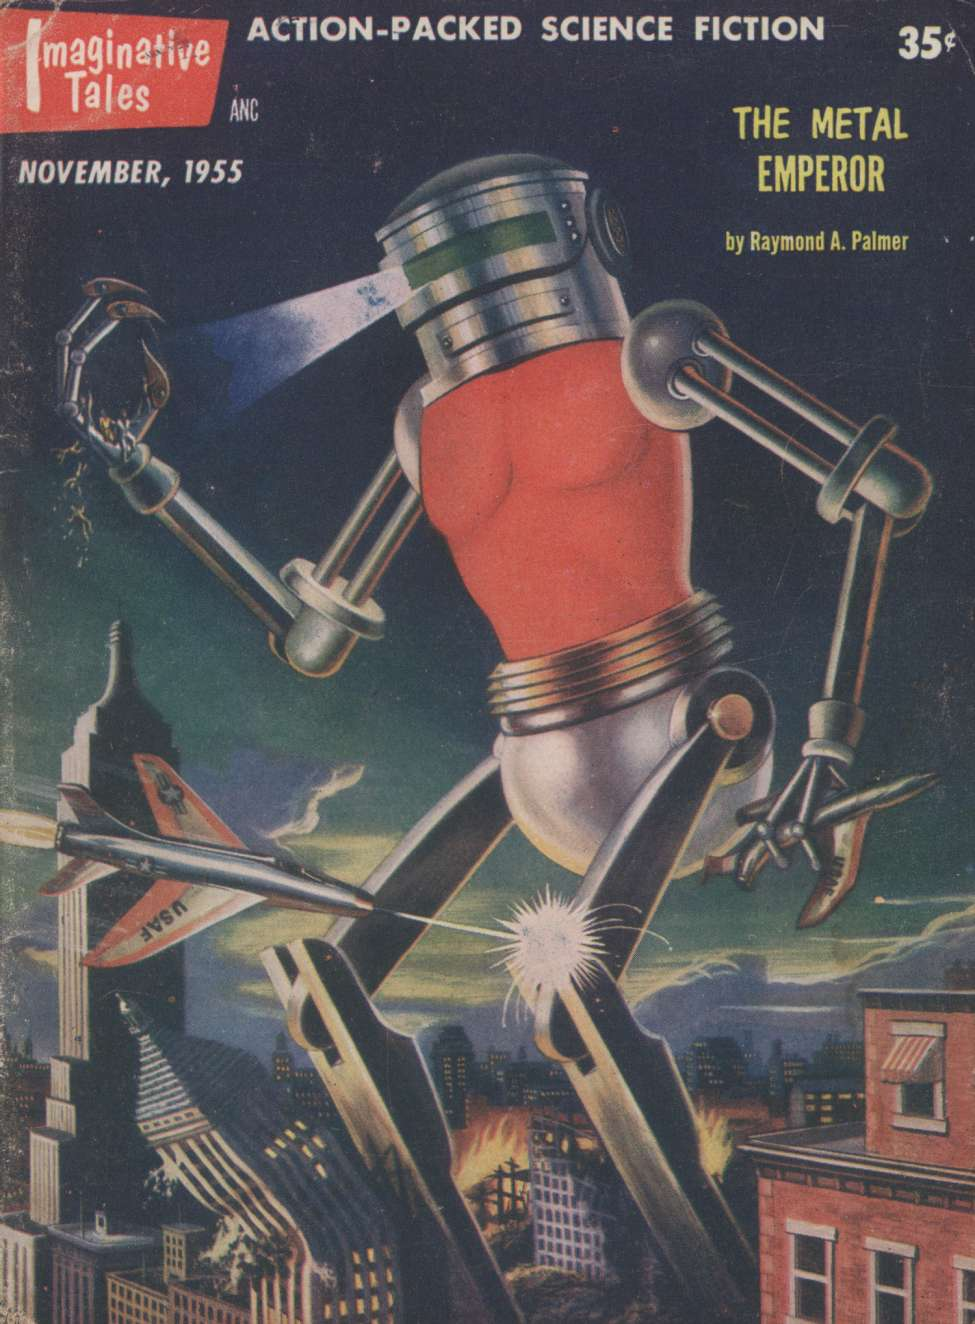 Comic Book Cover For Imaginative Tales v02 02 - The Metal Emperor - Raymond A. Palmer